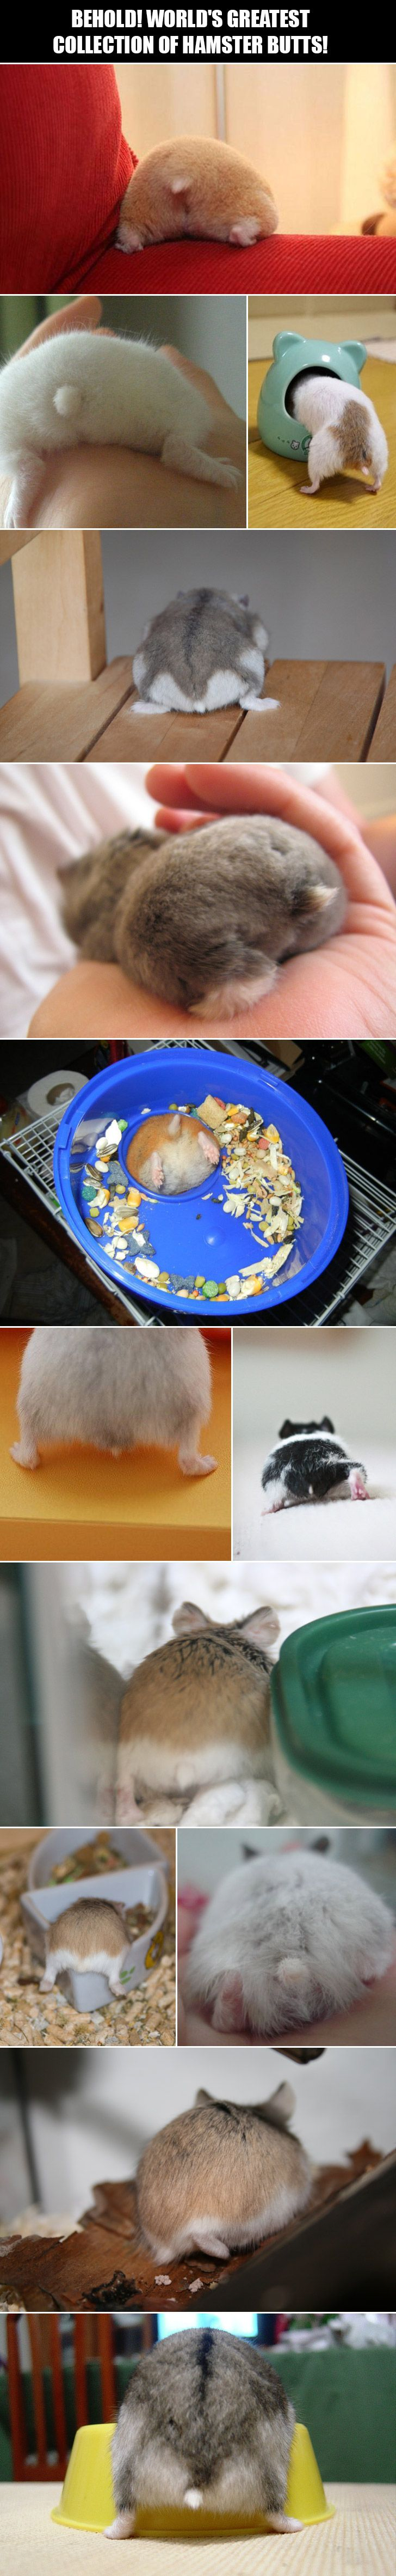 A LOVELY COLLECTION OF HAMSTER BUTTS.